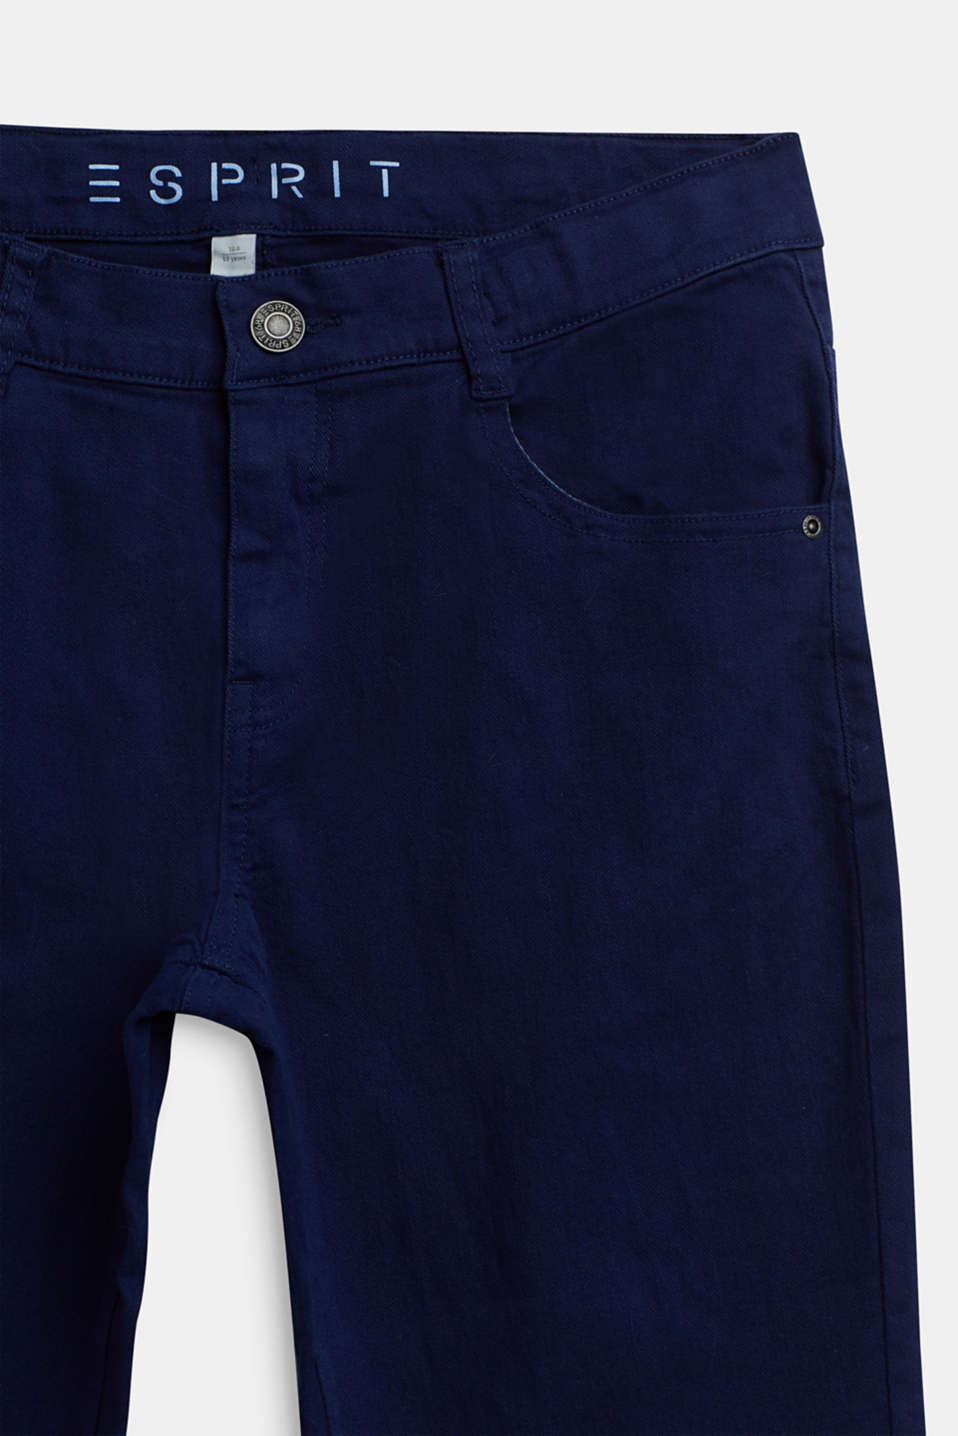 Coloured stretch jeans, adjustable waistband, LCMARINE BLUE, detail image number 2